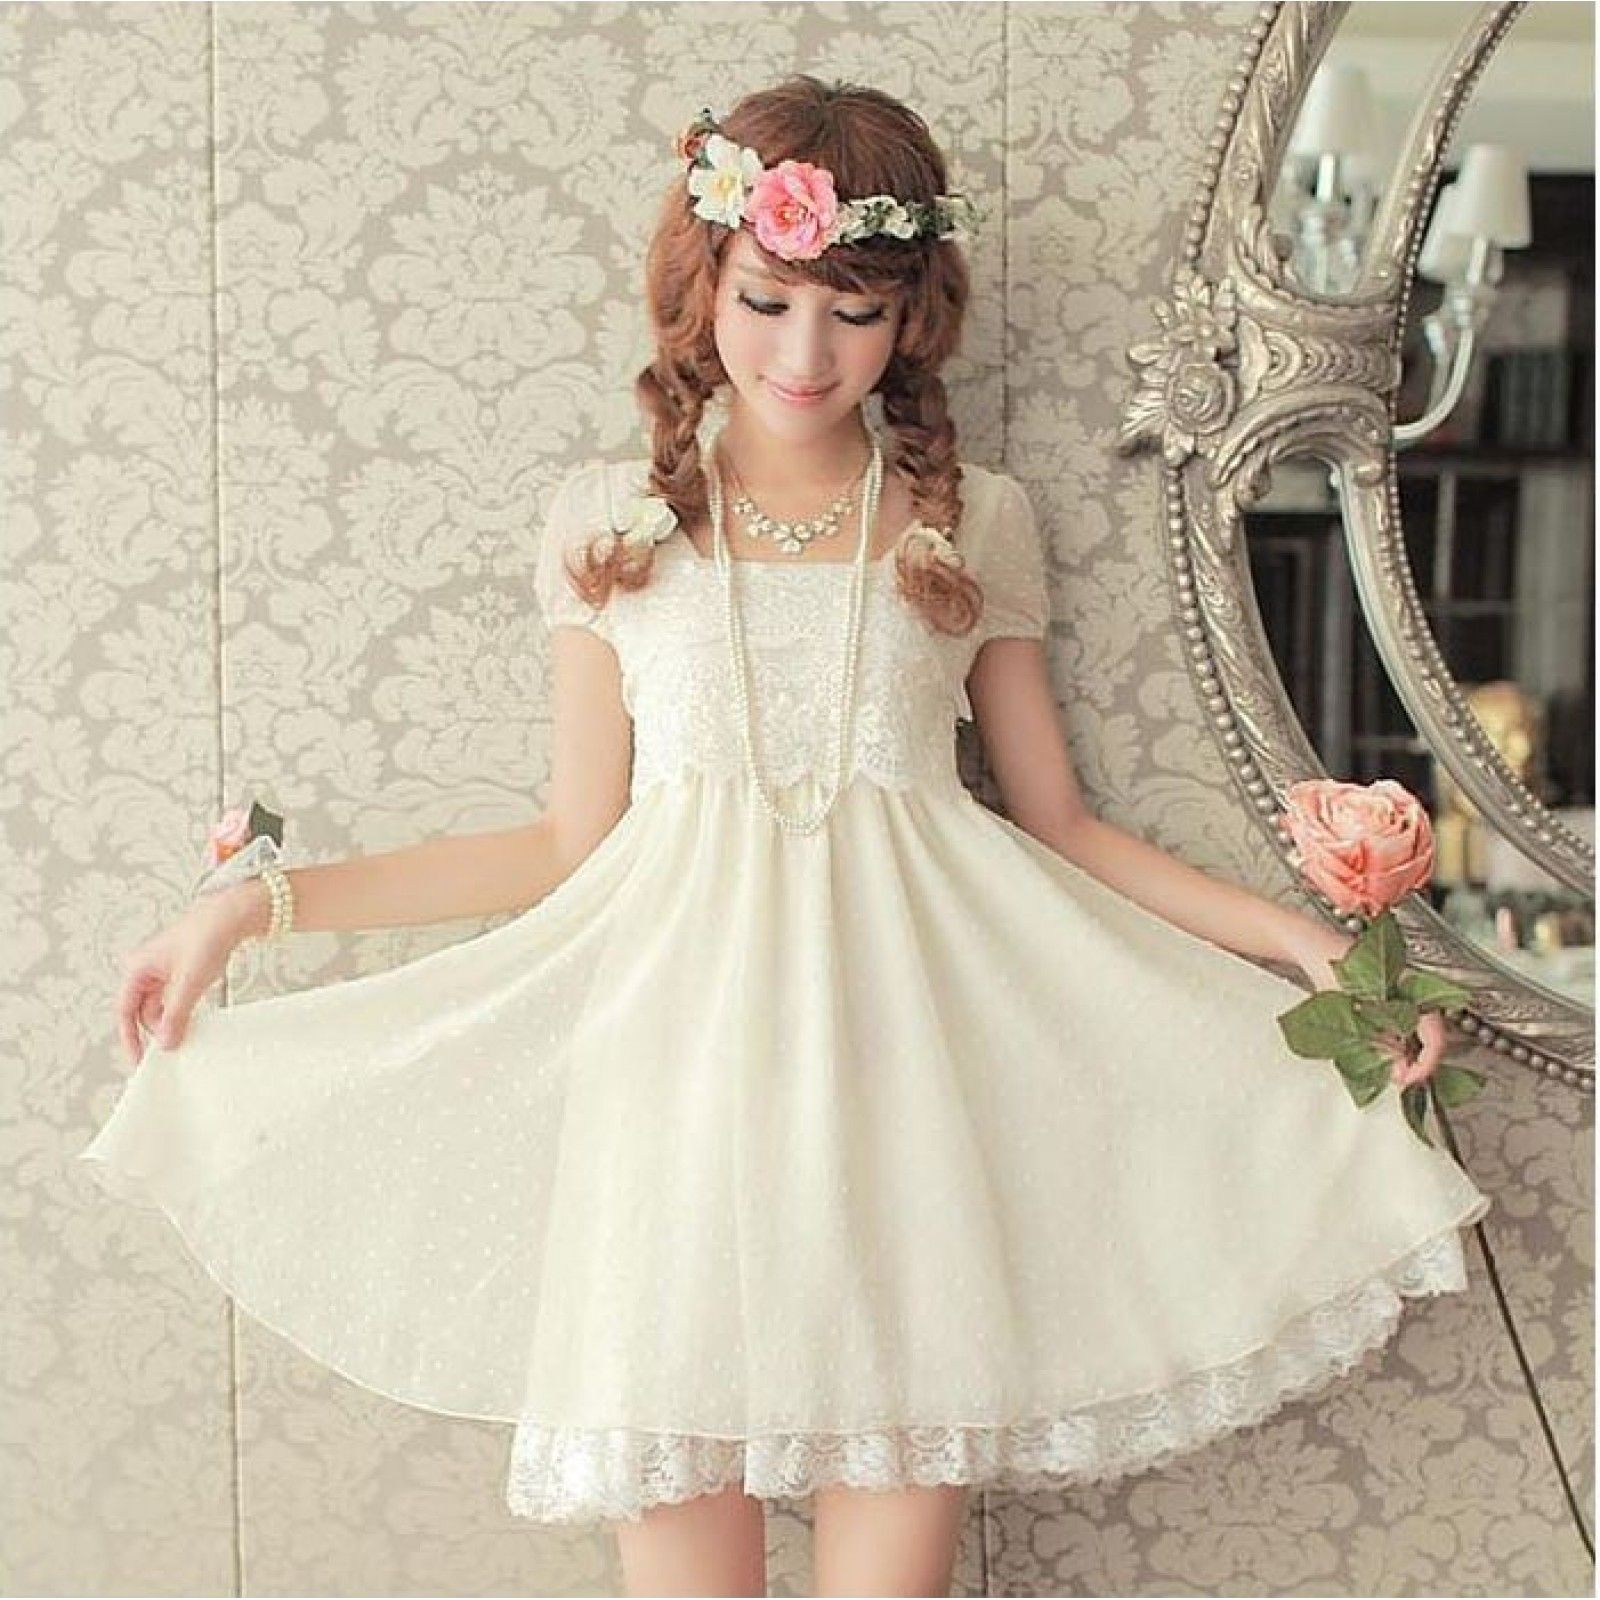 Cute White Dress With Lace Sweet Looking Japanese Fashion Kawaii Outfits Pinterest